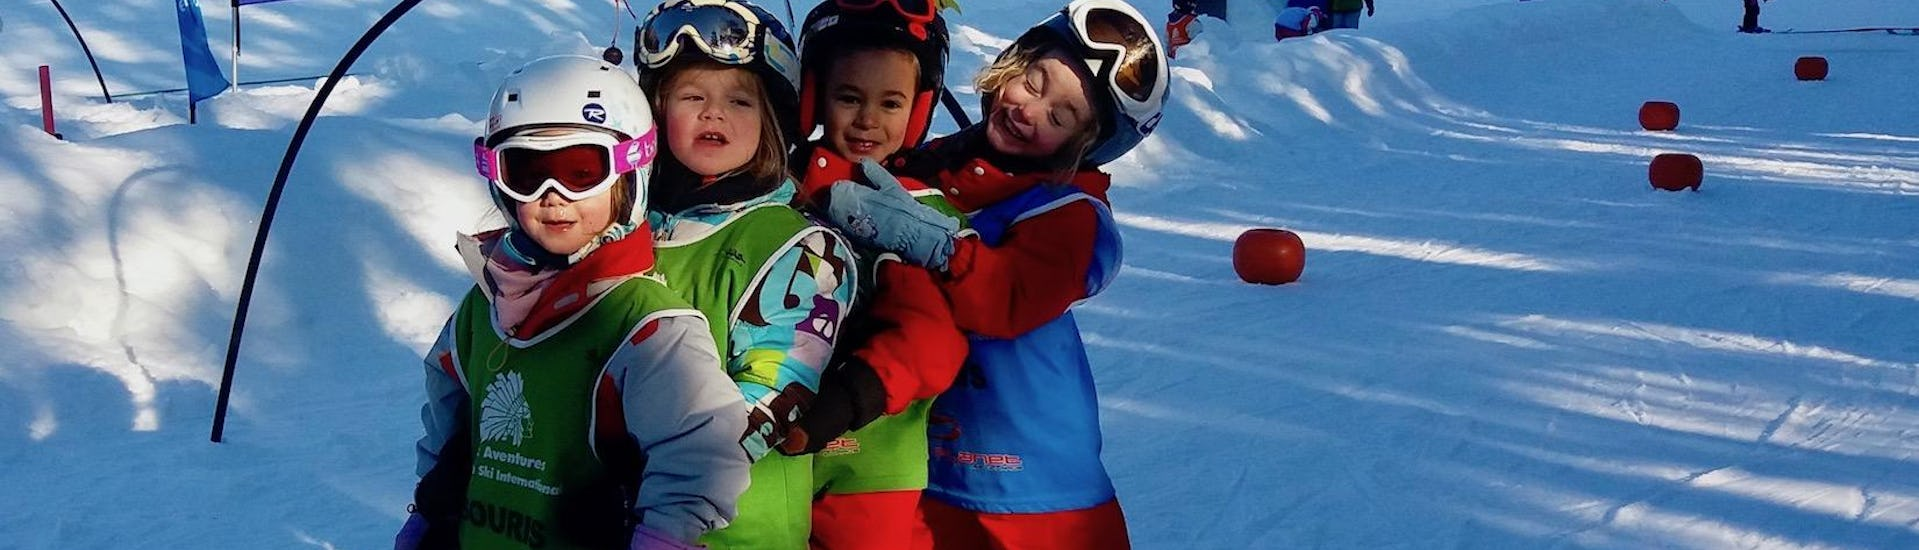 Kids Ski Lessons (3-4 years) - Holiday - Afternoon - Arc1800